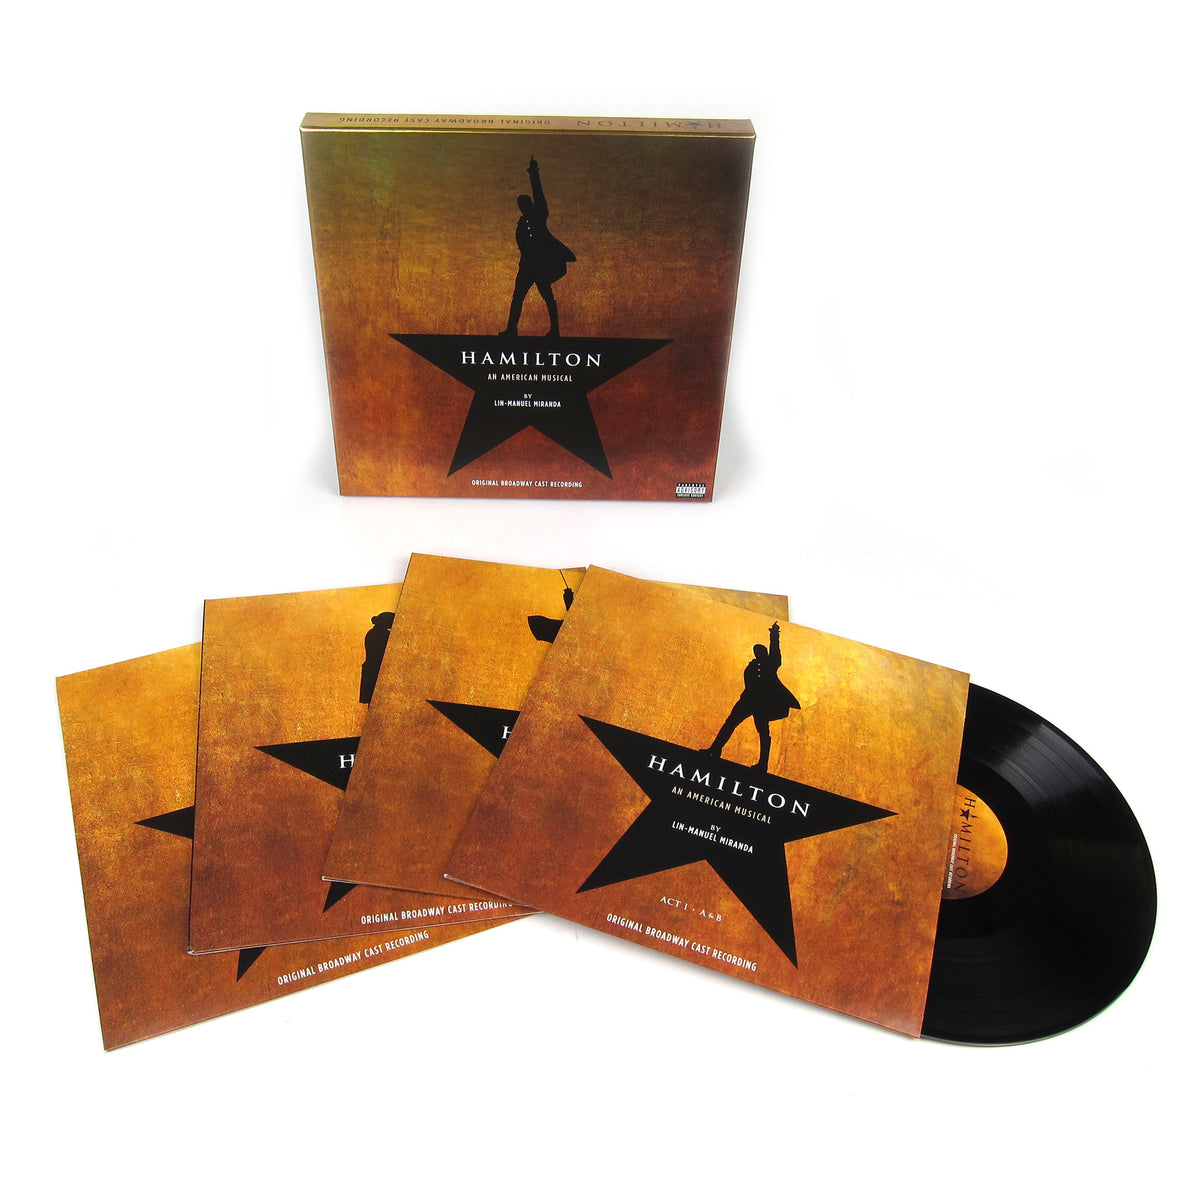 Hamilton: Original Broadway Cast Recording Vinyl 4LP Boxset